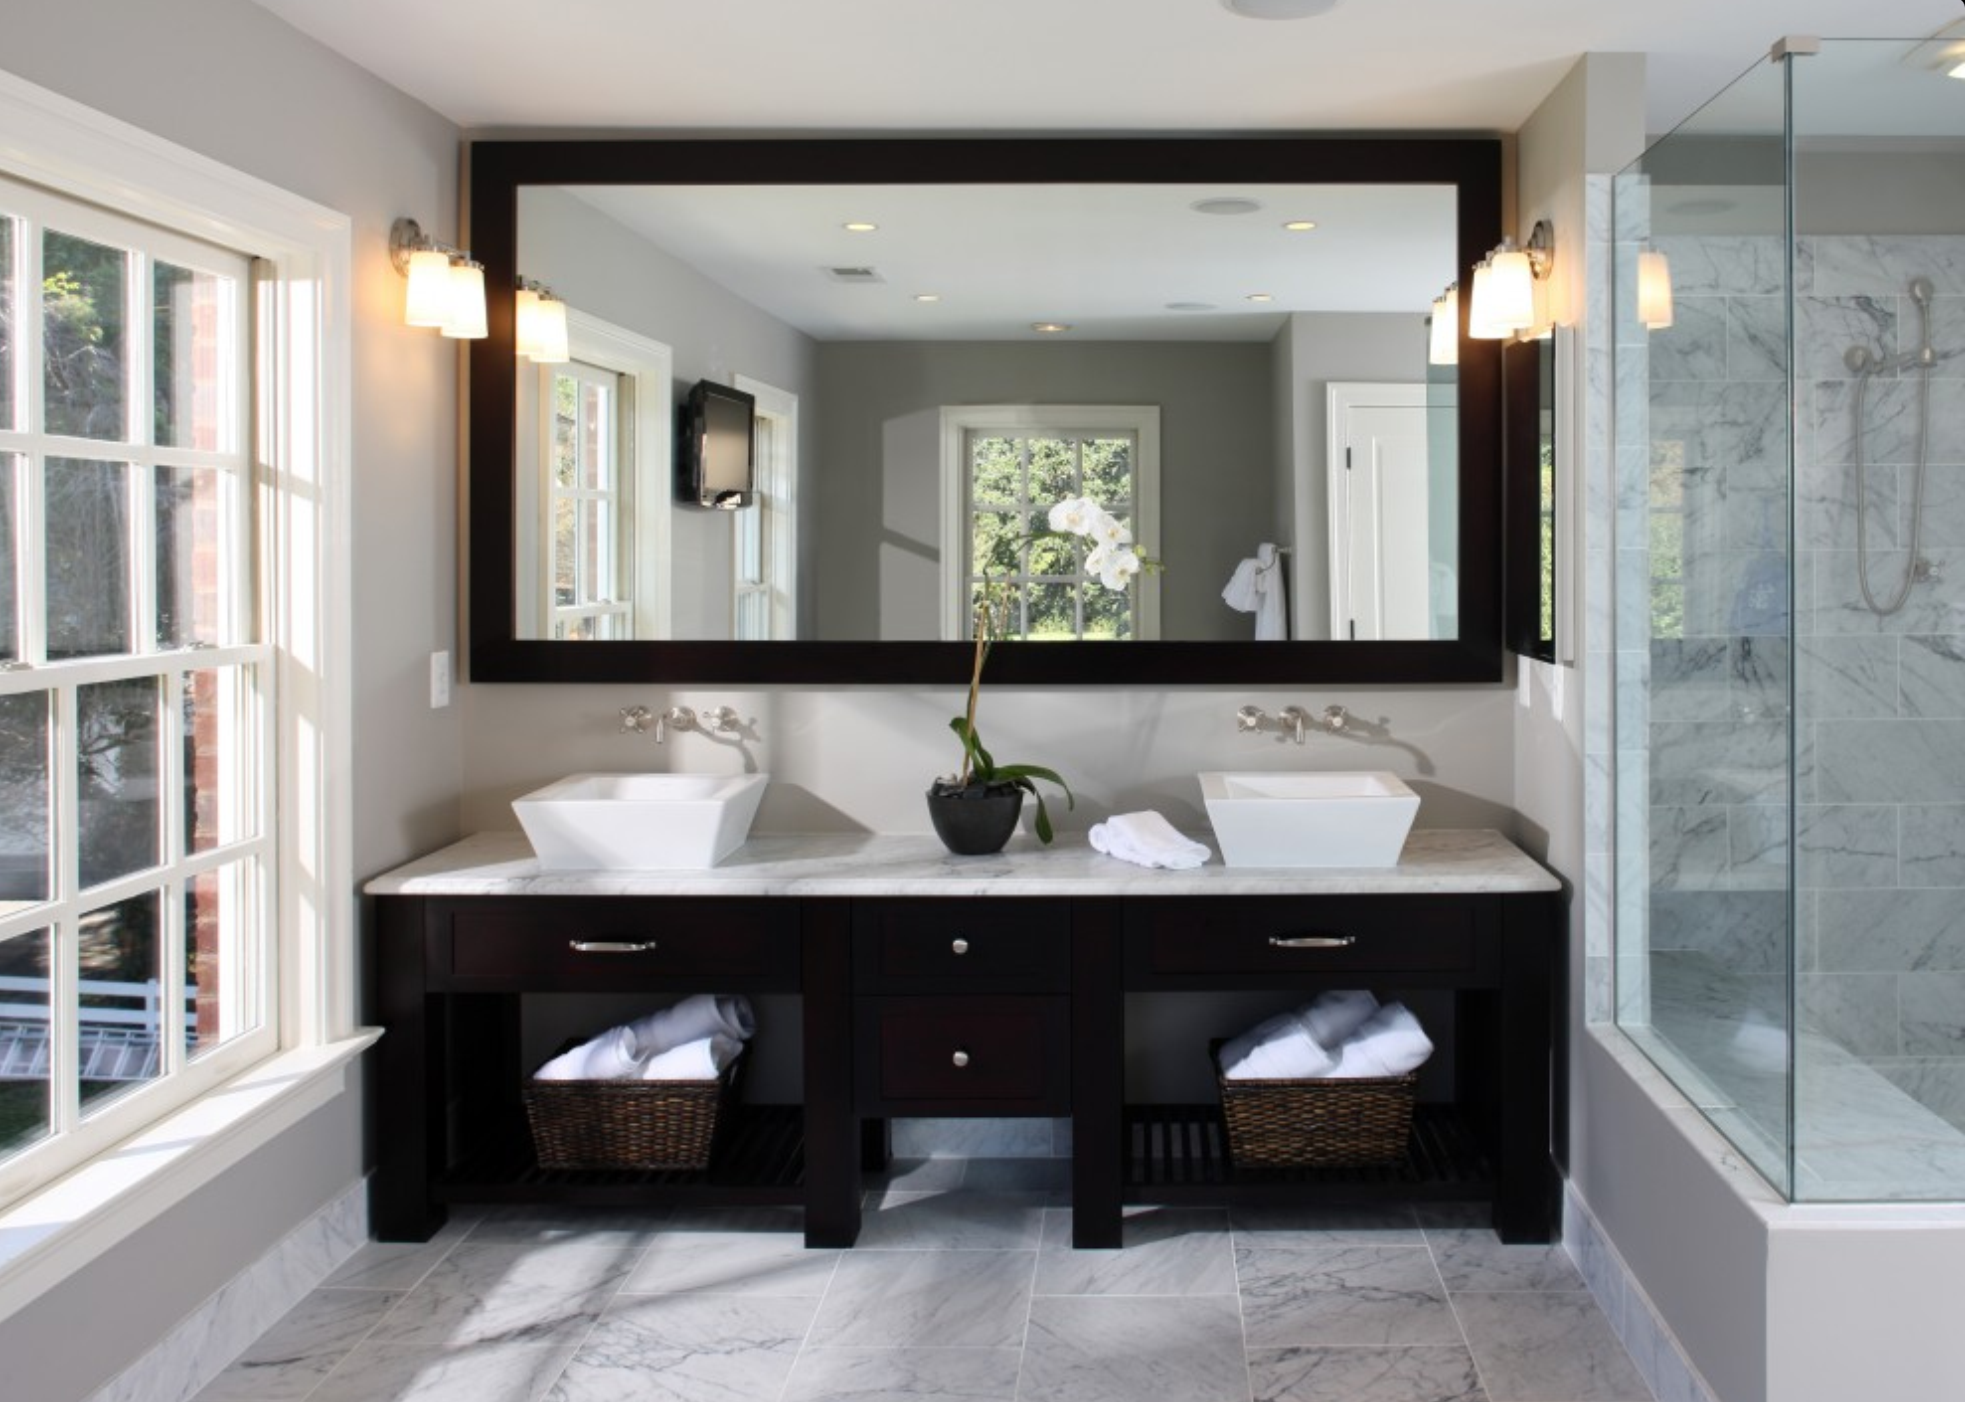 budget bathrooms remodels beautiful bathroom small tile design on ideas a remodel bath diy remodeling designs